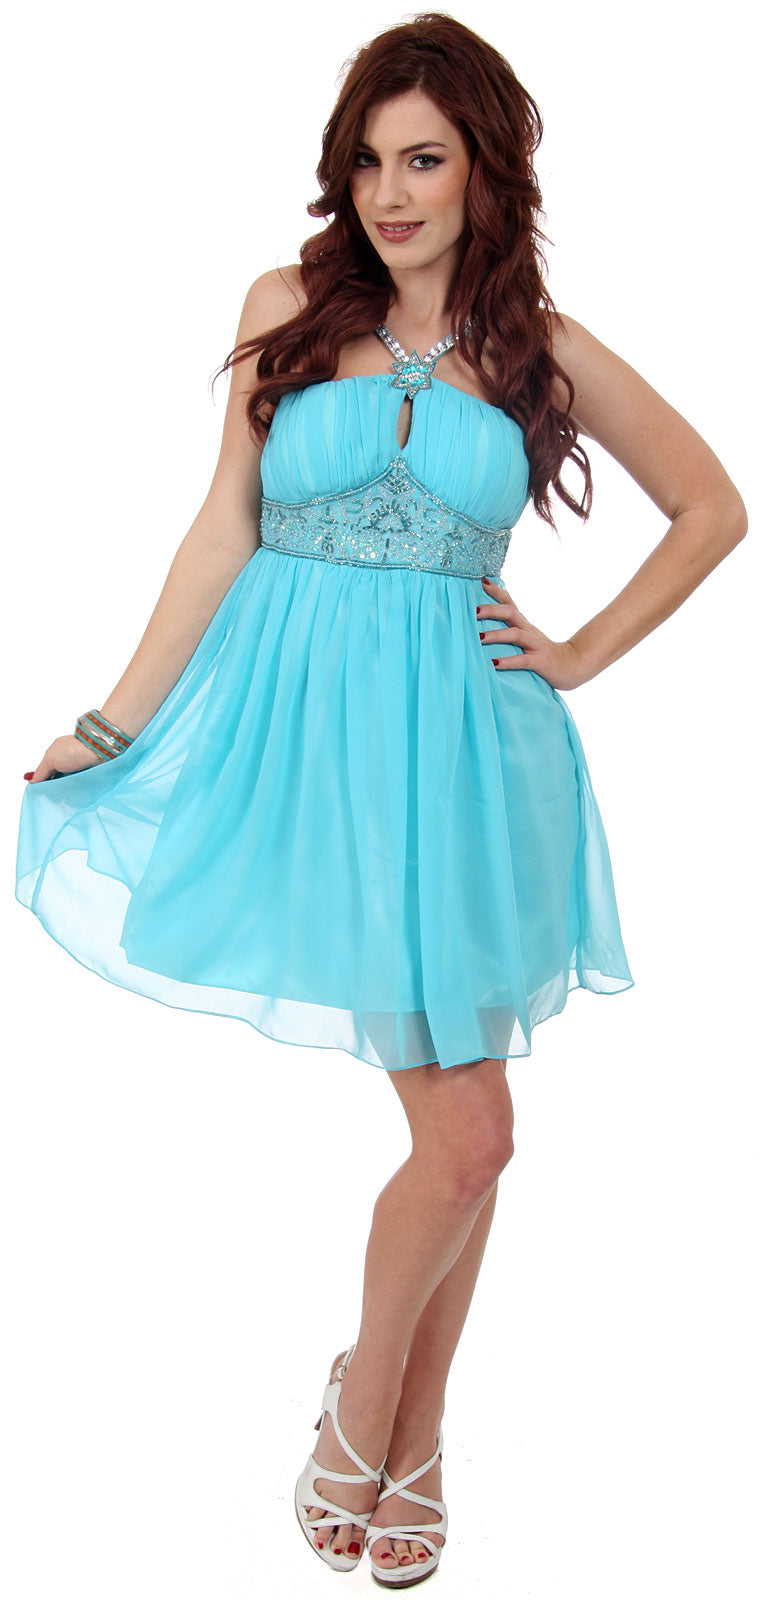 Main image of Halter Neck Shirred & Beaded Short Party Dress